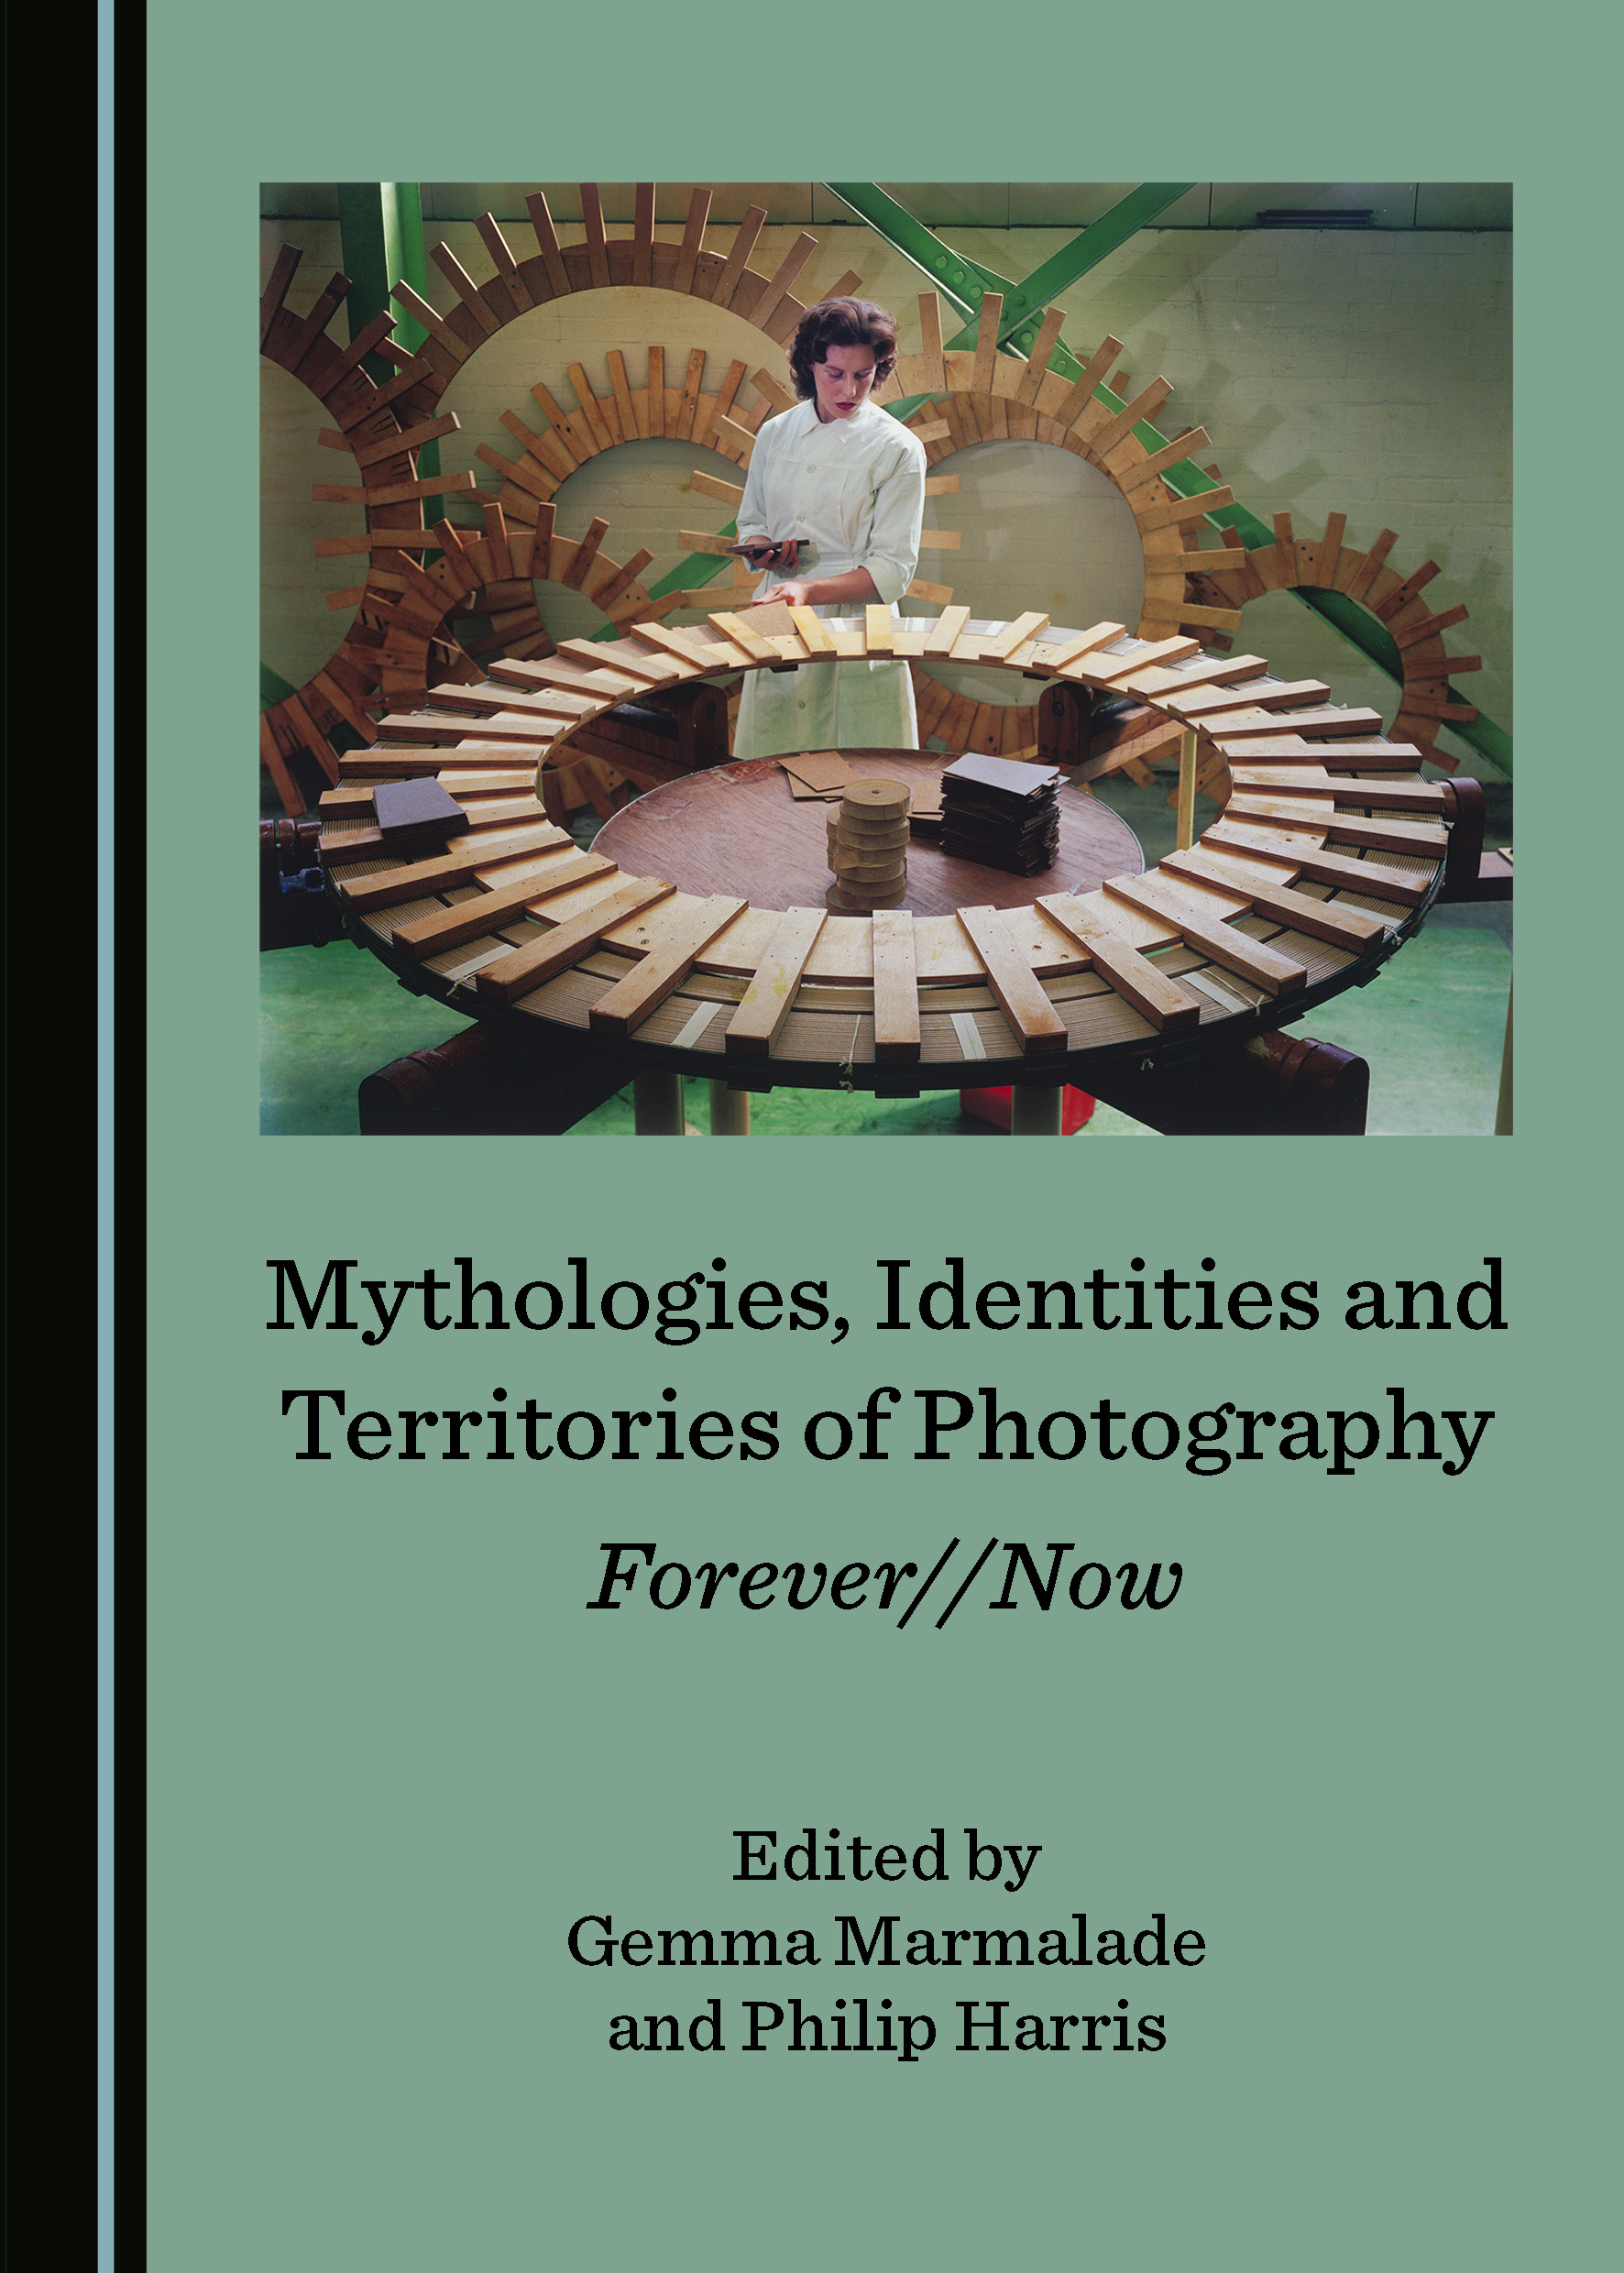 Mythologies, Identities and Territories of Photography: Forever//Now